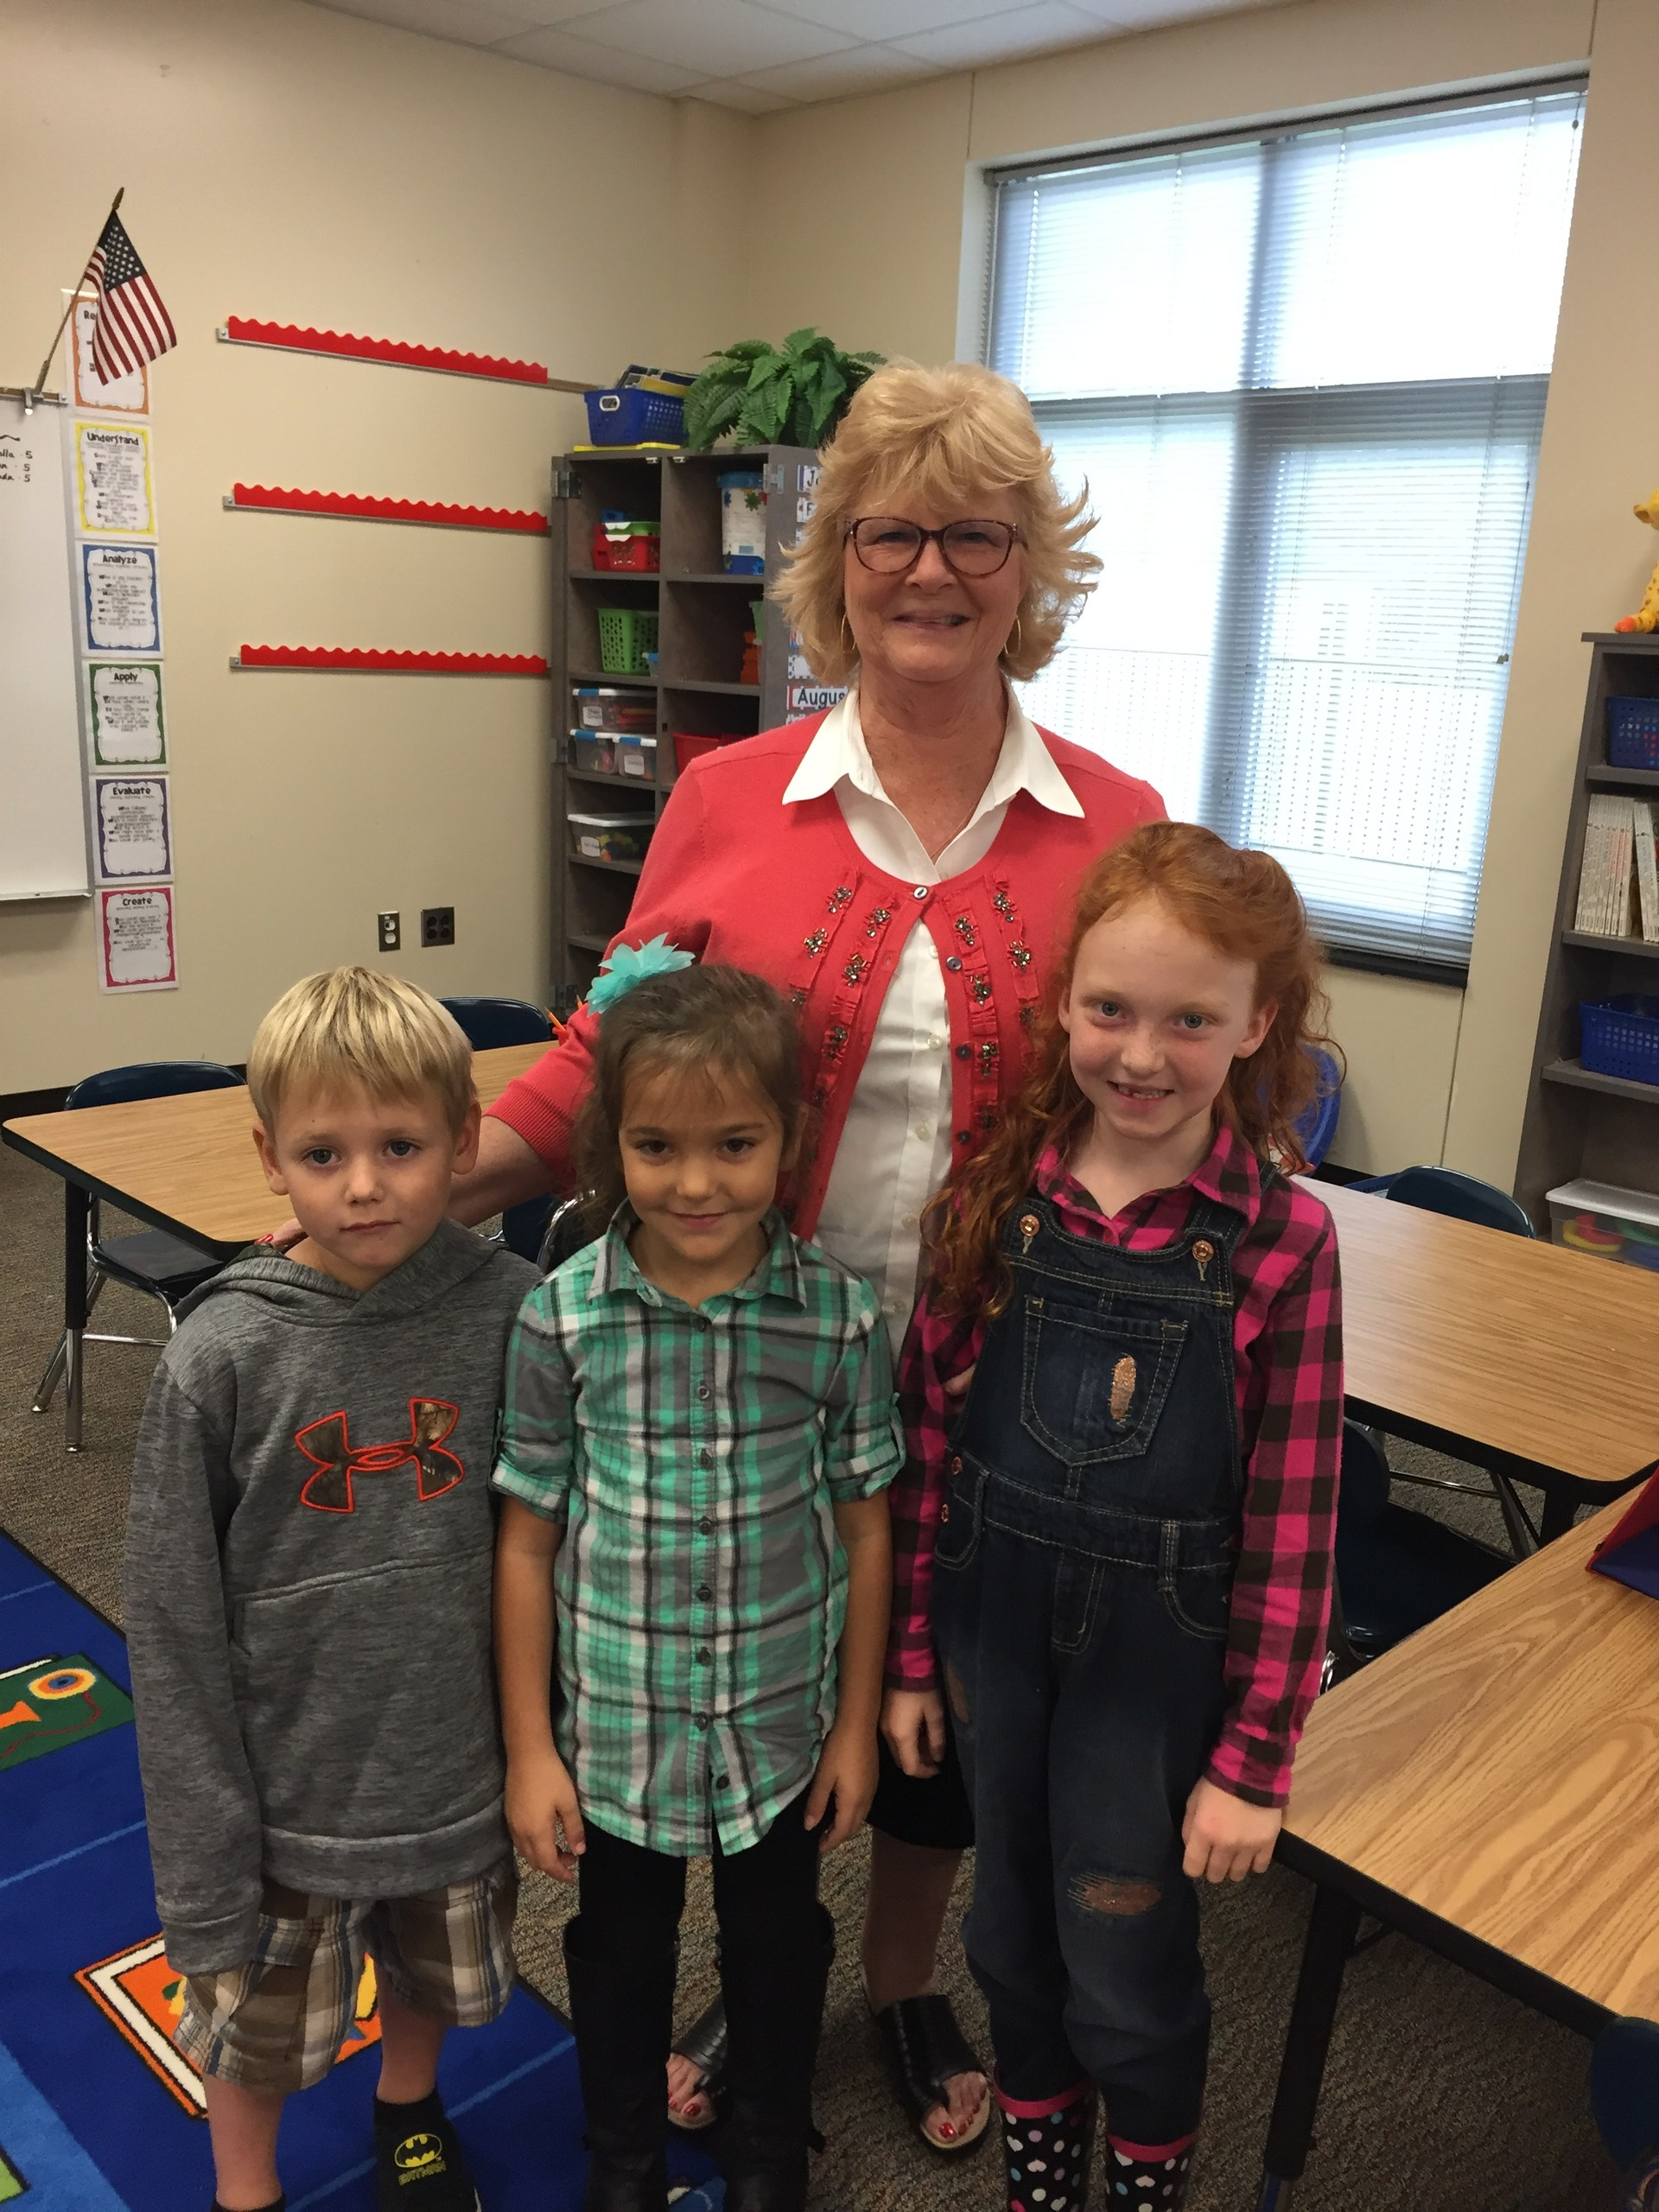 Debbie Pickett with kids